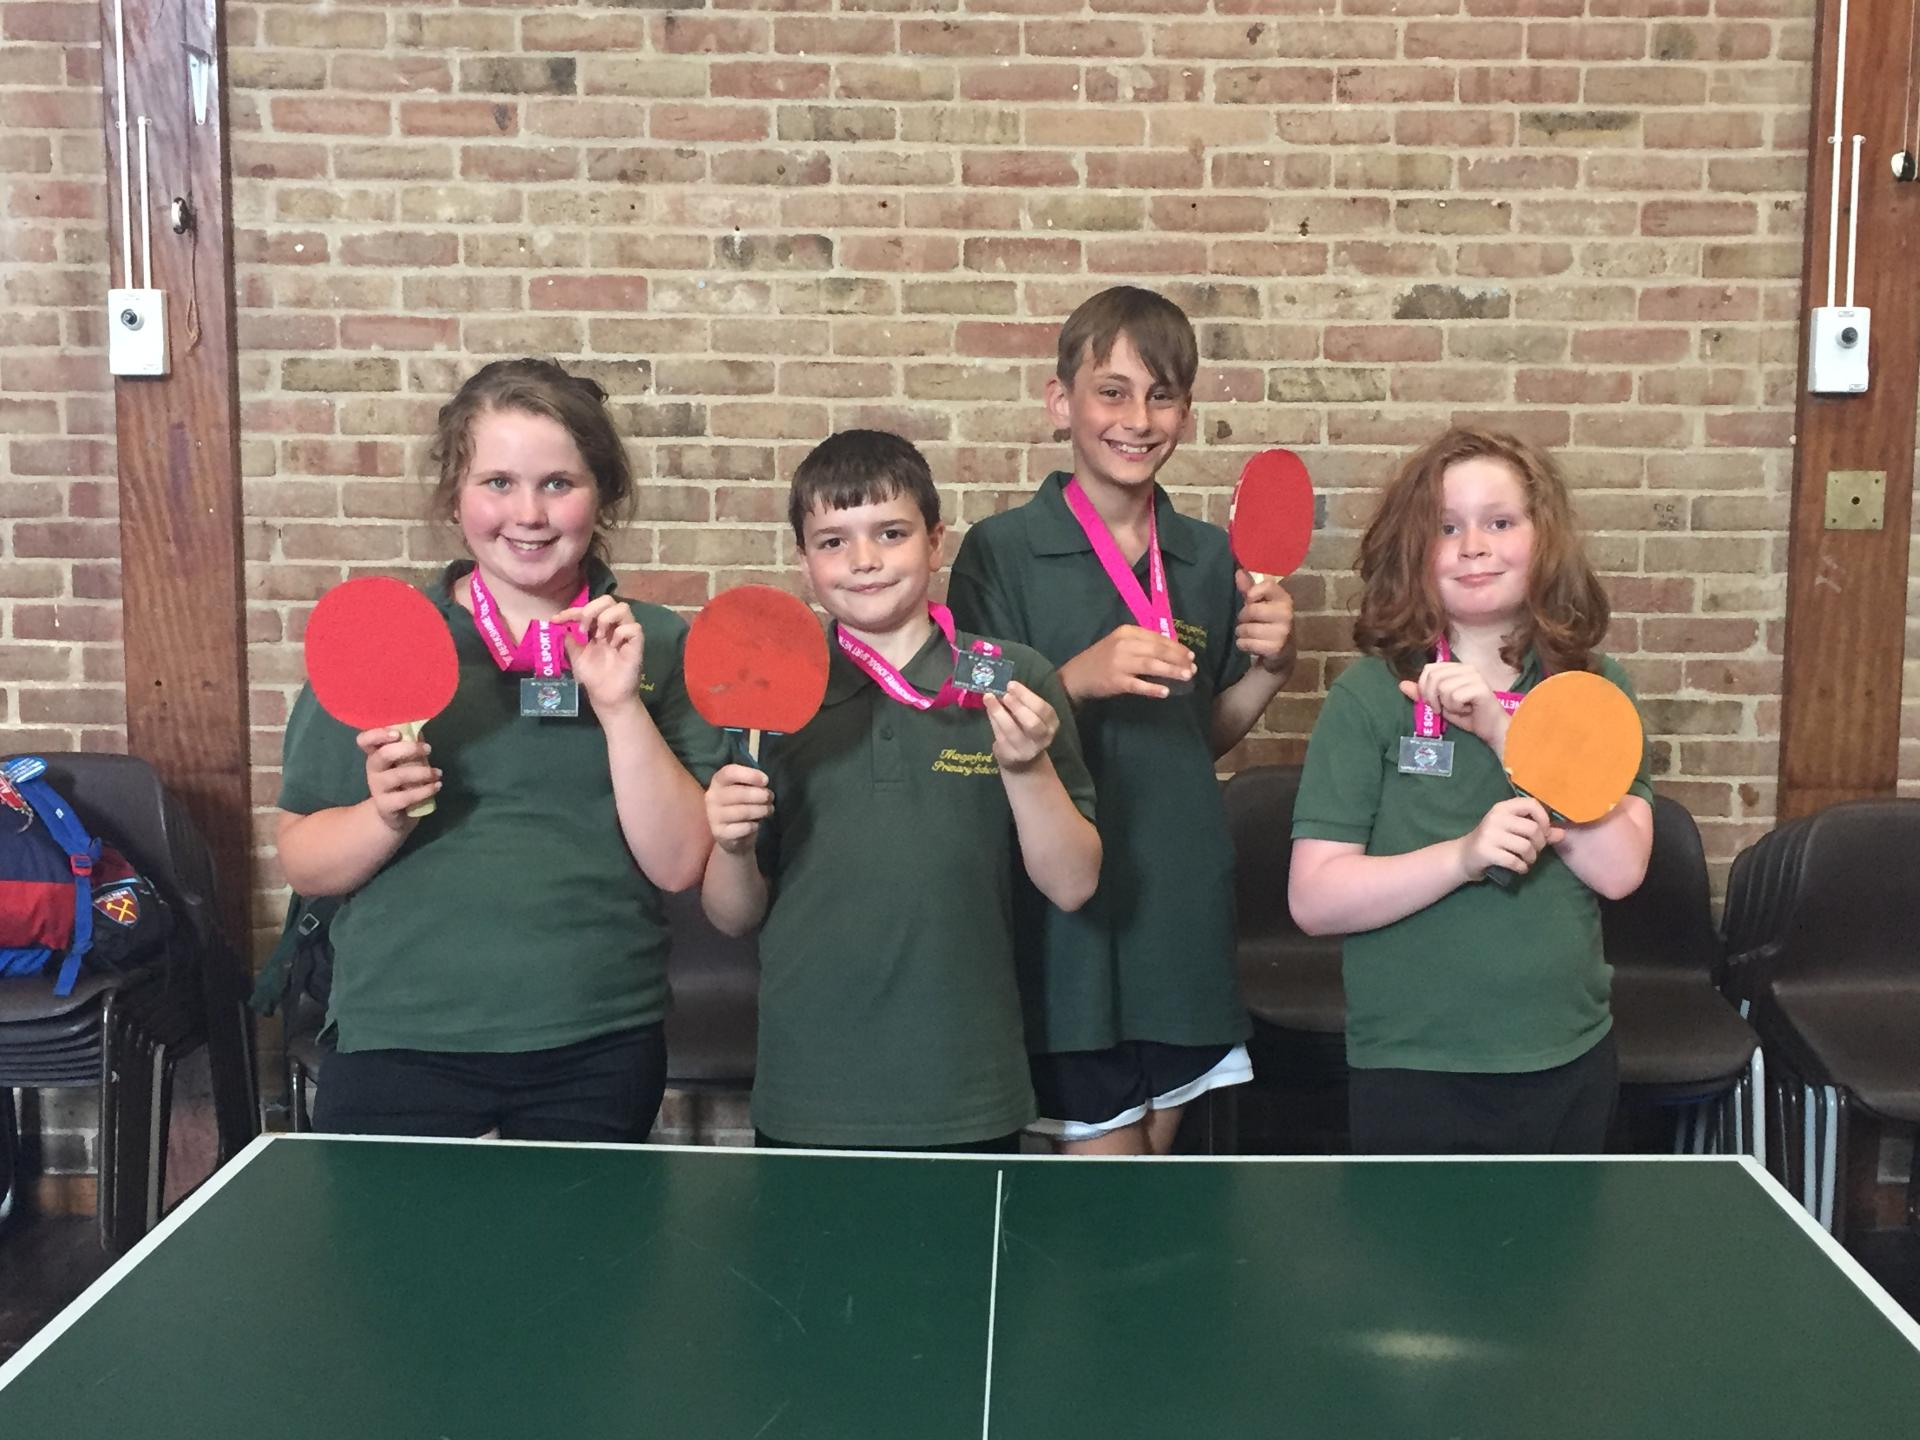 Table tennis 21.6.17